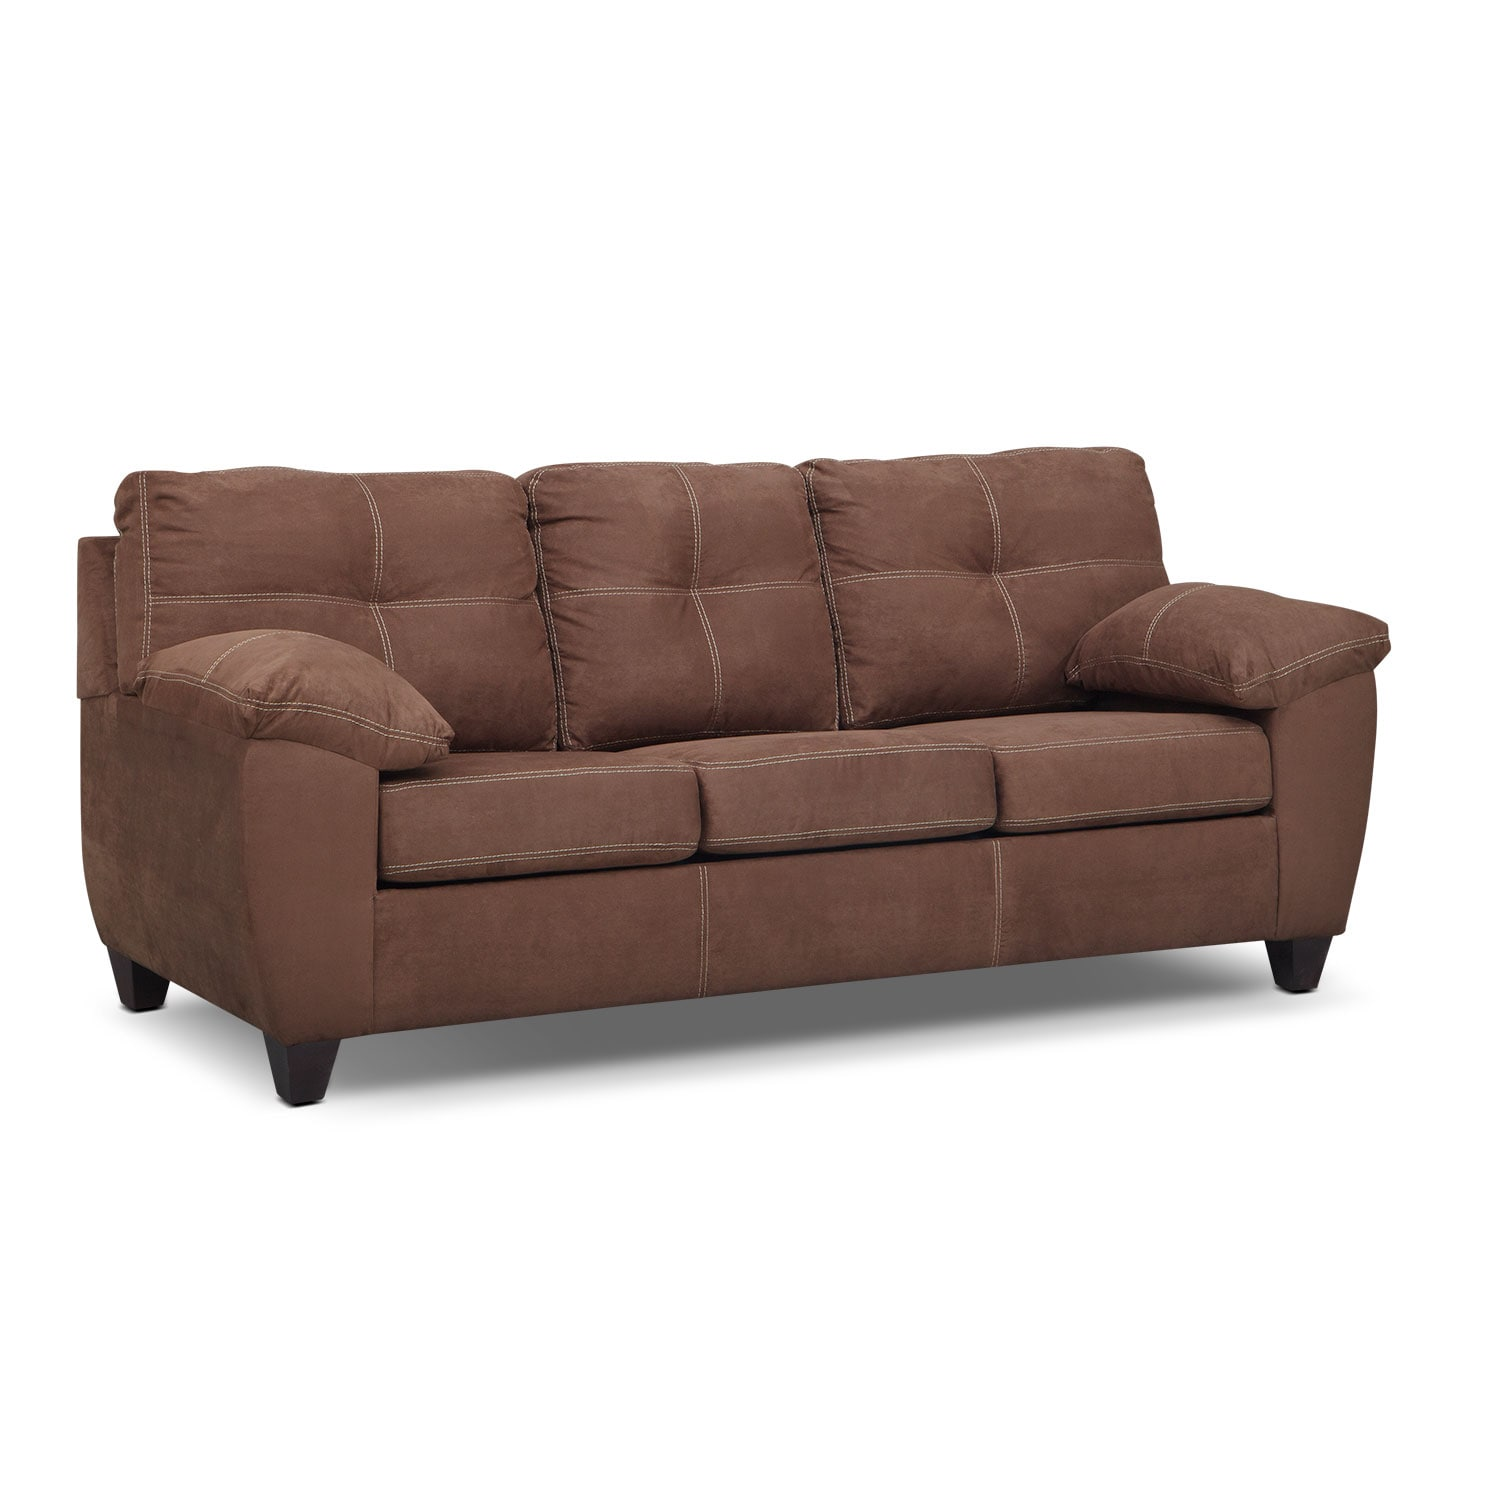 ... Memory Foam Sleeper Sofa   Coffee. Hover To Zoom